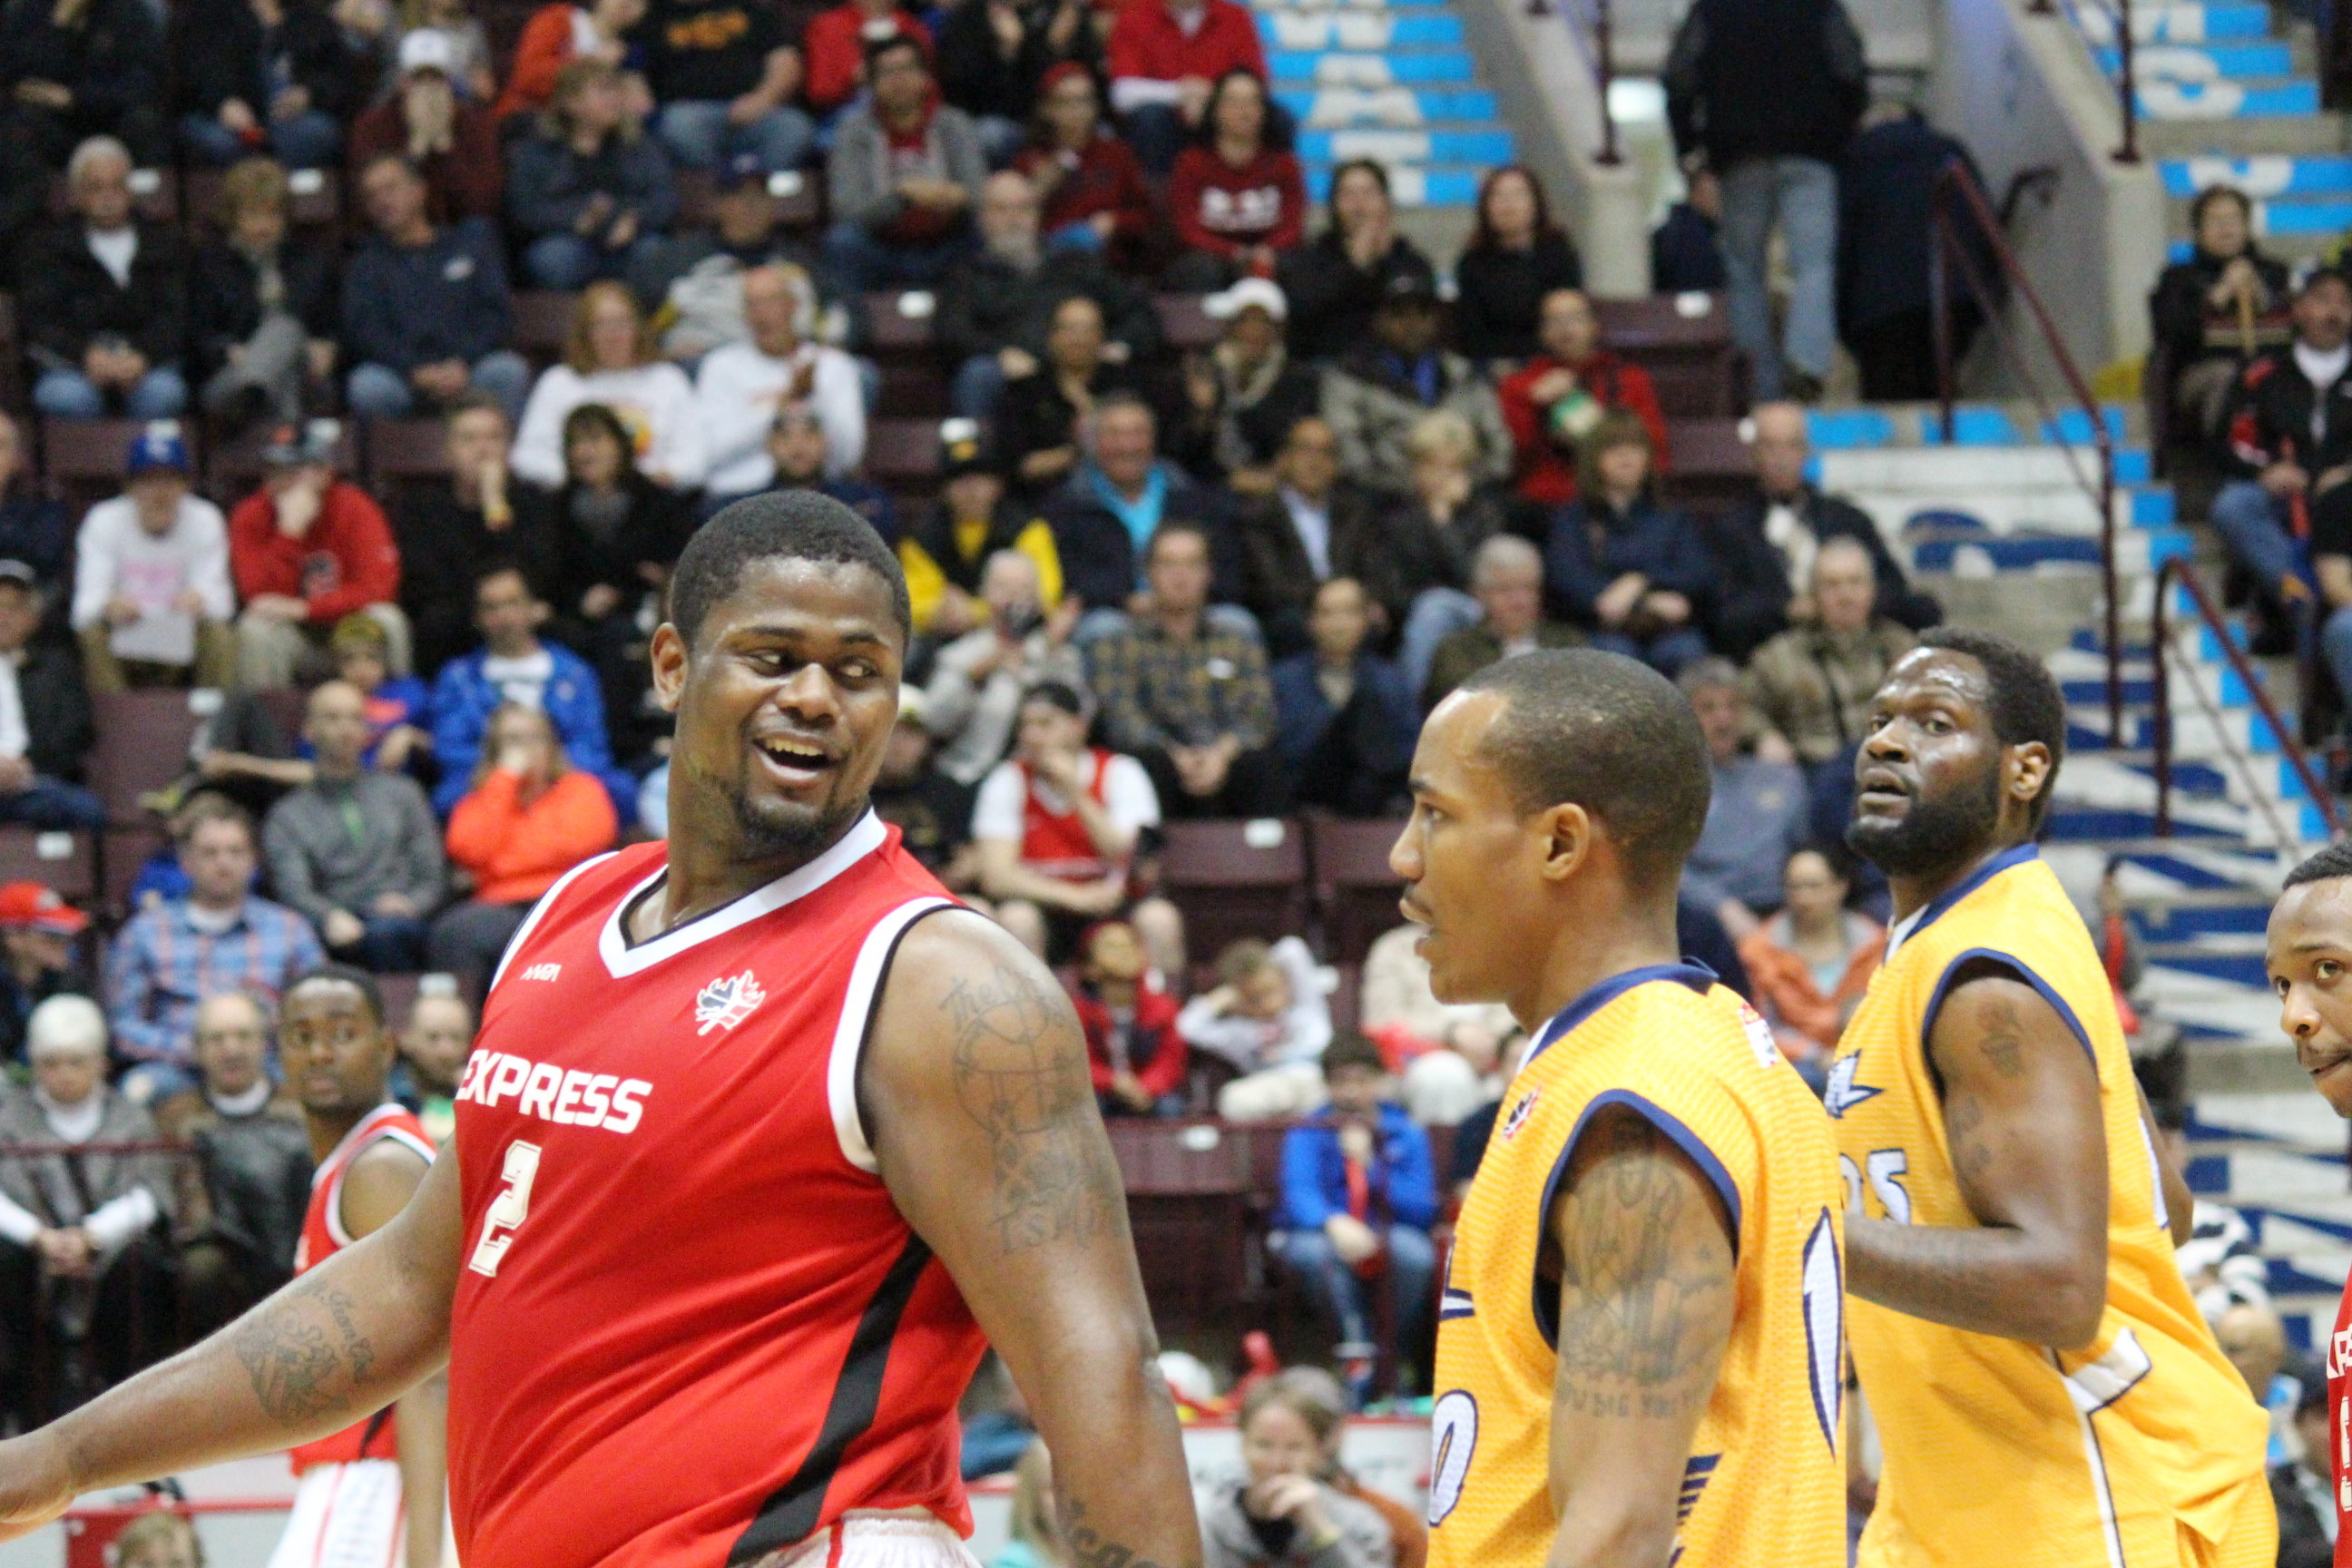 The Windsor Express host the Island Storm in Game 2 of the NBL Canada Finals on April 6, 2014 (Photo by Ricardo Veneza)